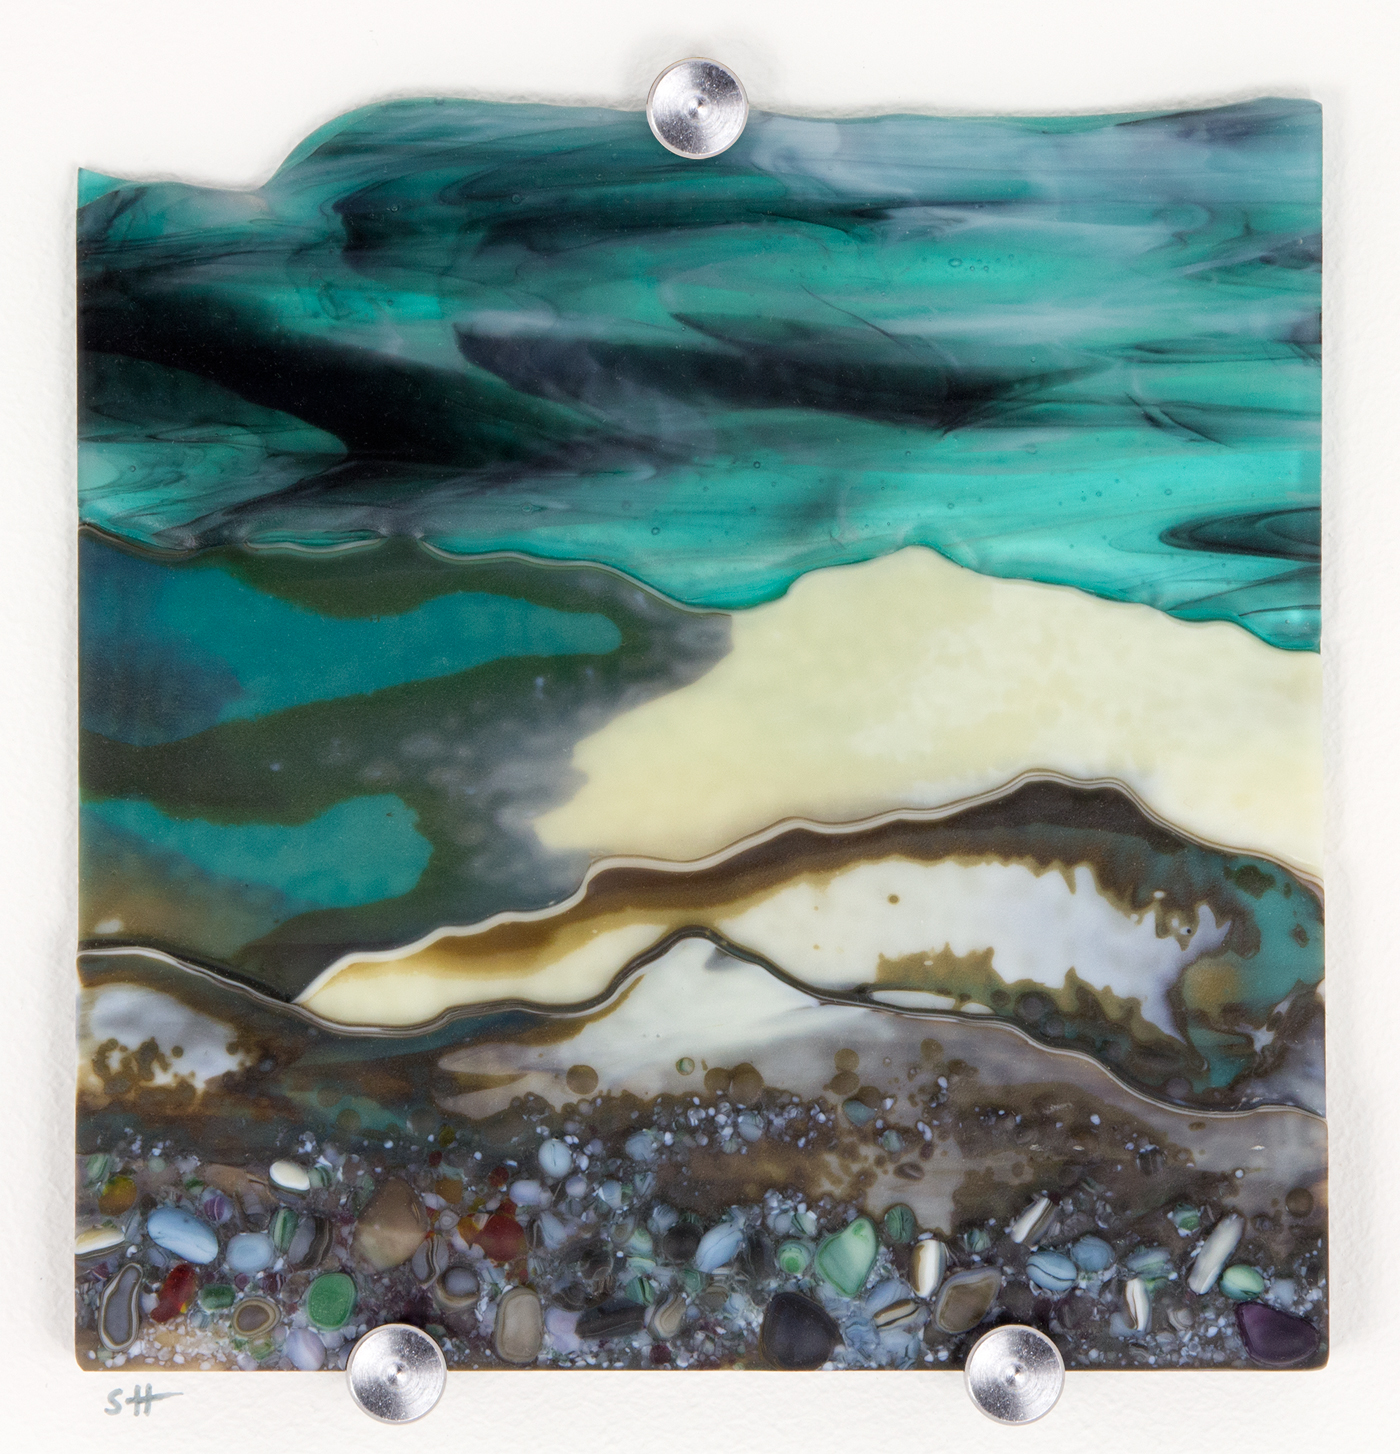 Glass Wall Art, welsh landscape Border Country, with aqua blue sky clouds art, vanilla/greens/grey with glass frits in foreground.